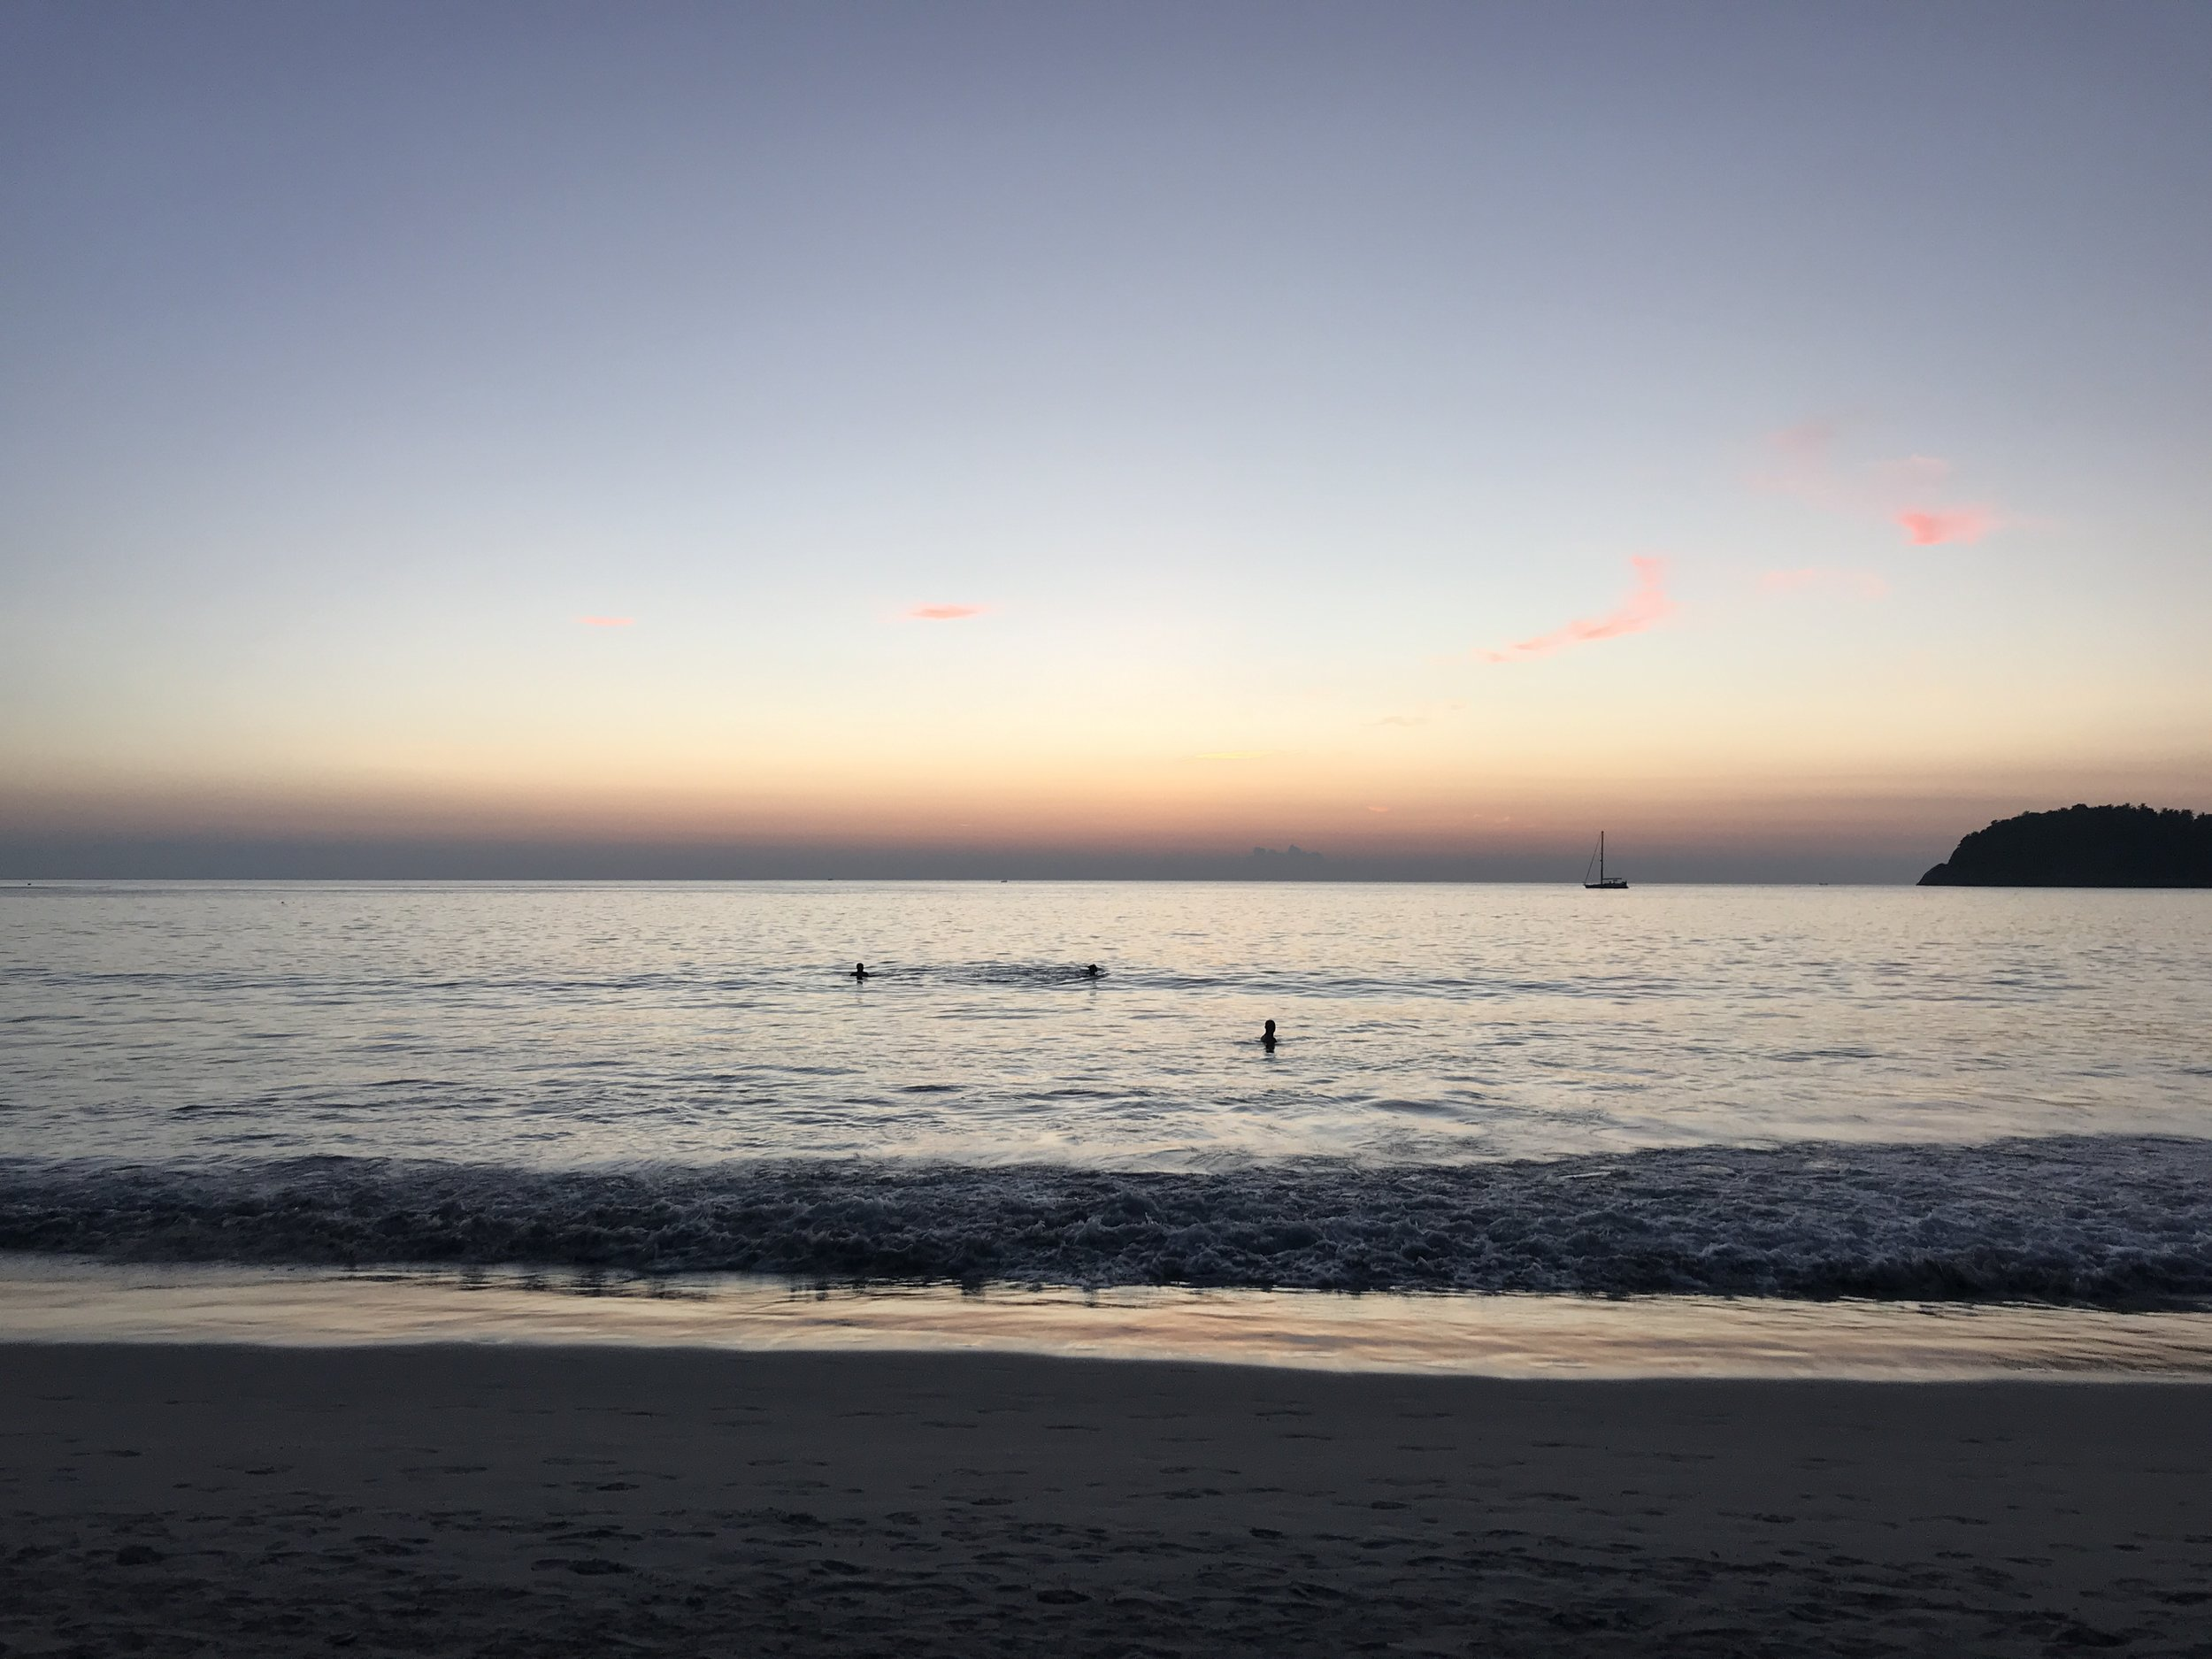 warm Thai beaches - I never thought of myself as a beach girl, but I could do this everyday.